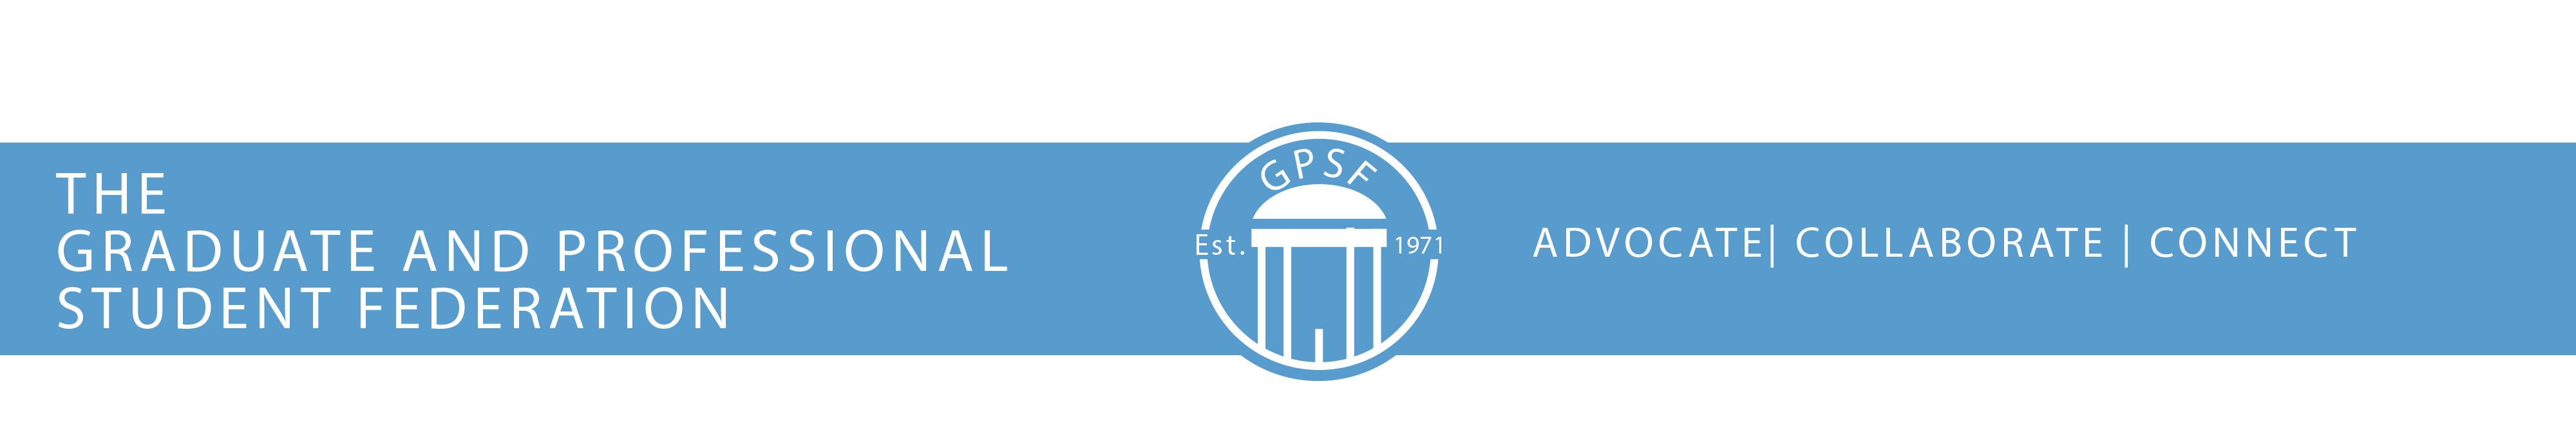 Graduate and Professional Student Federation